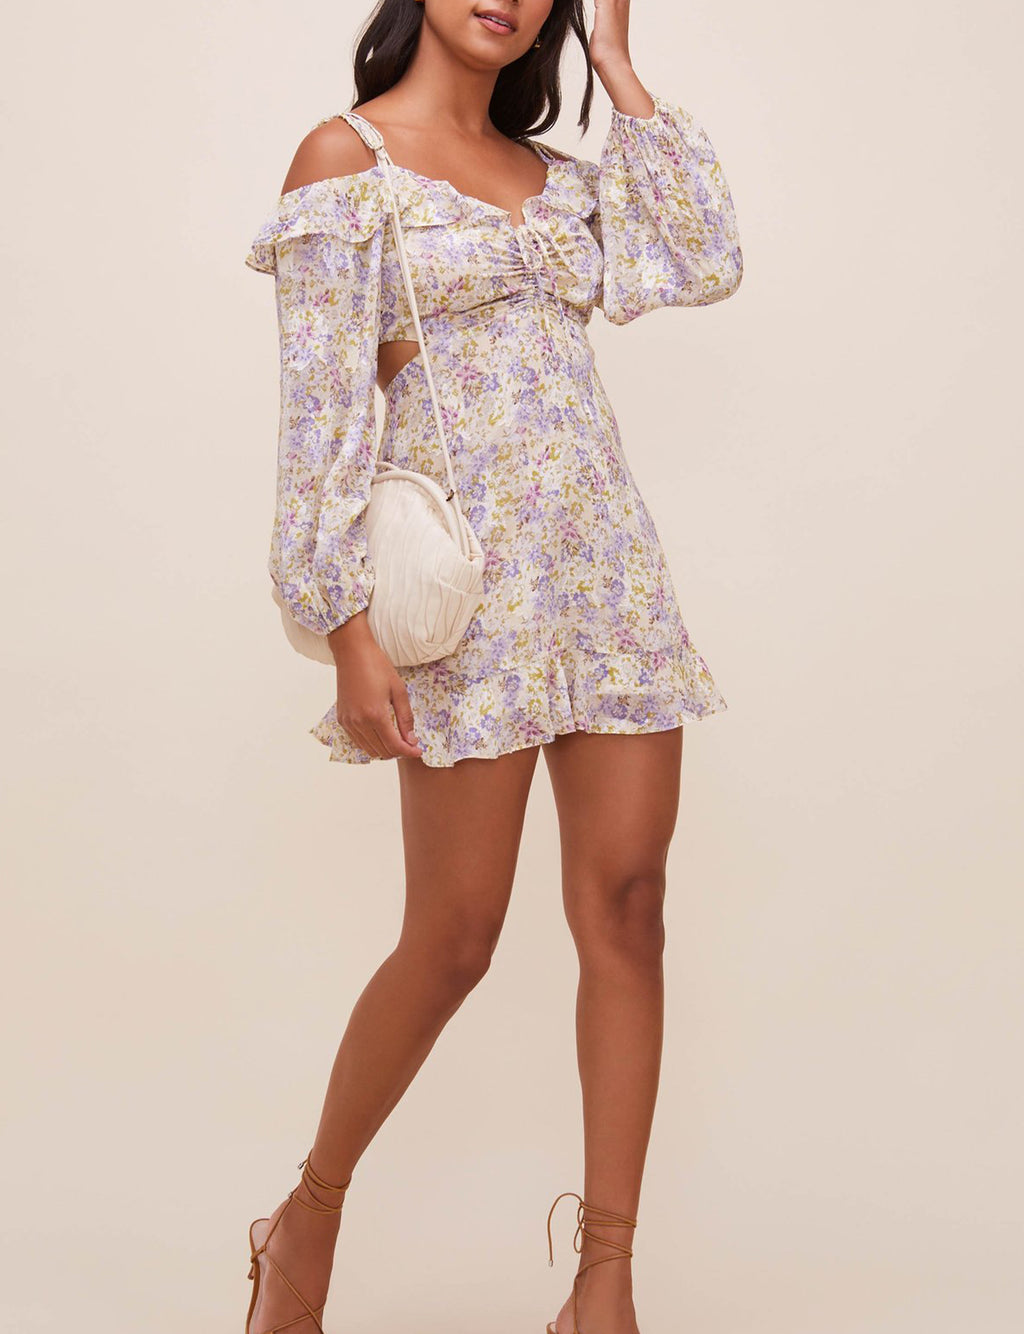 Anastasia Floral Dress in Ivory/Lilac